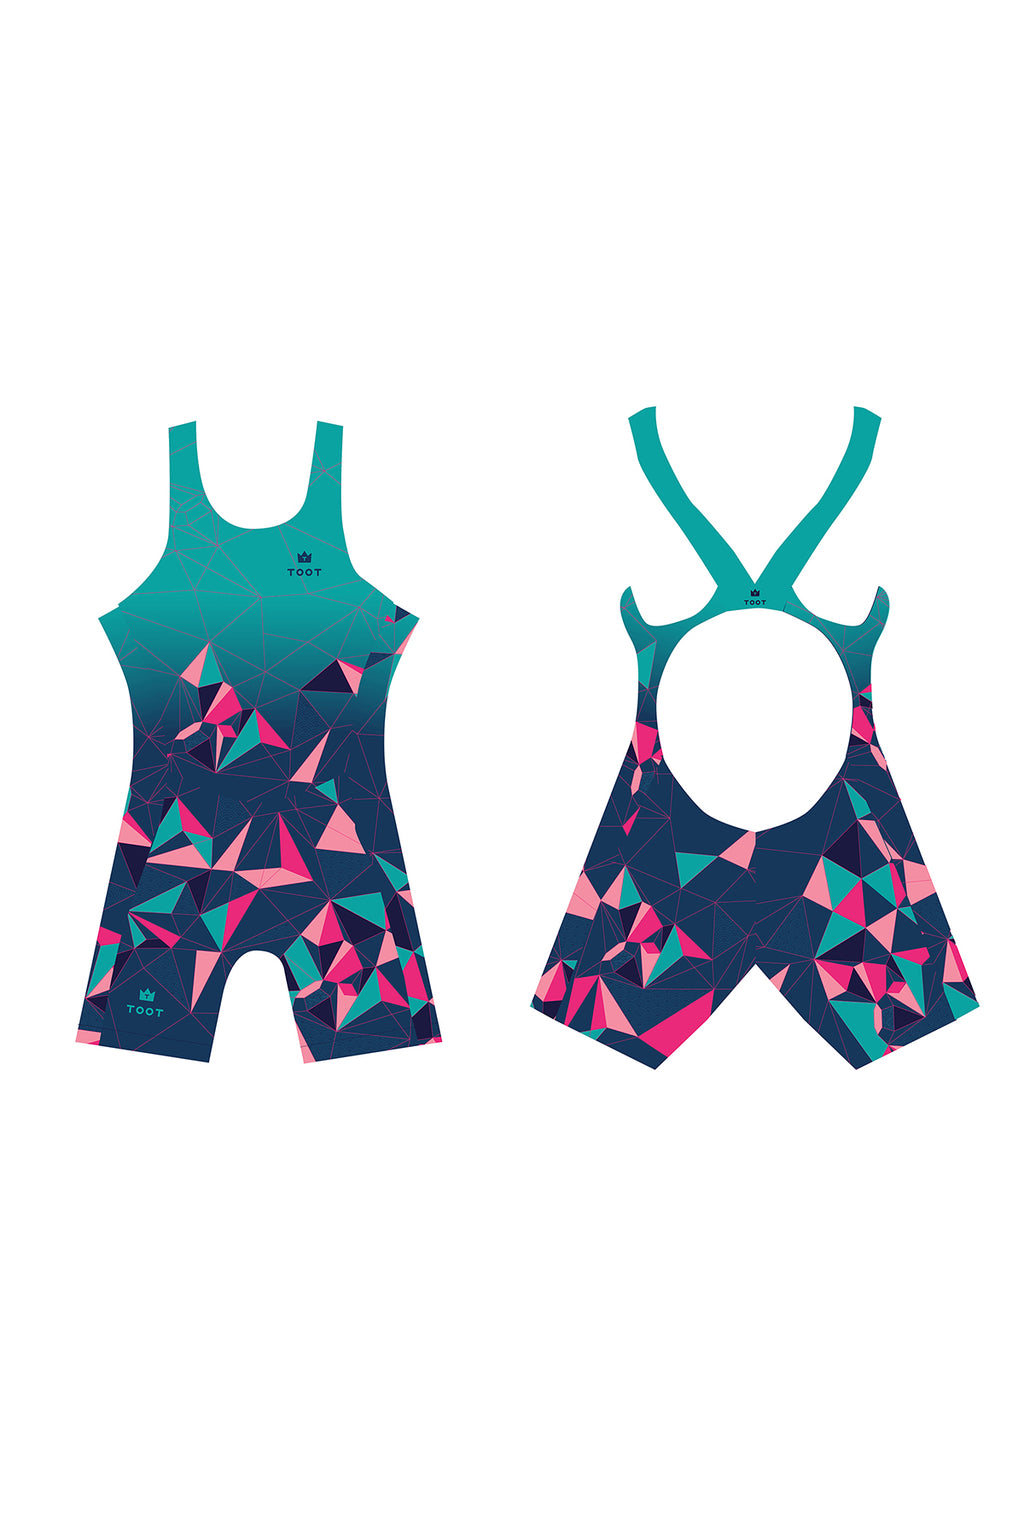 Swimsuit back womens triathlon suit